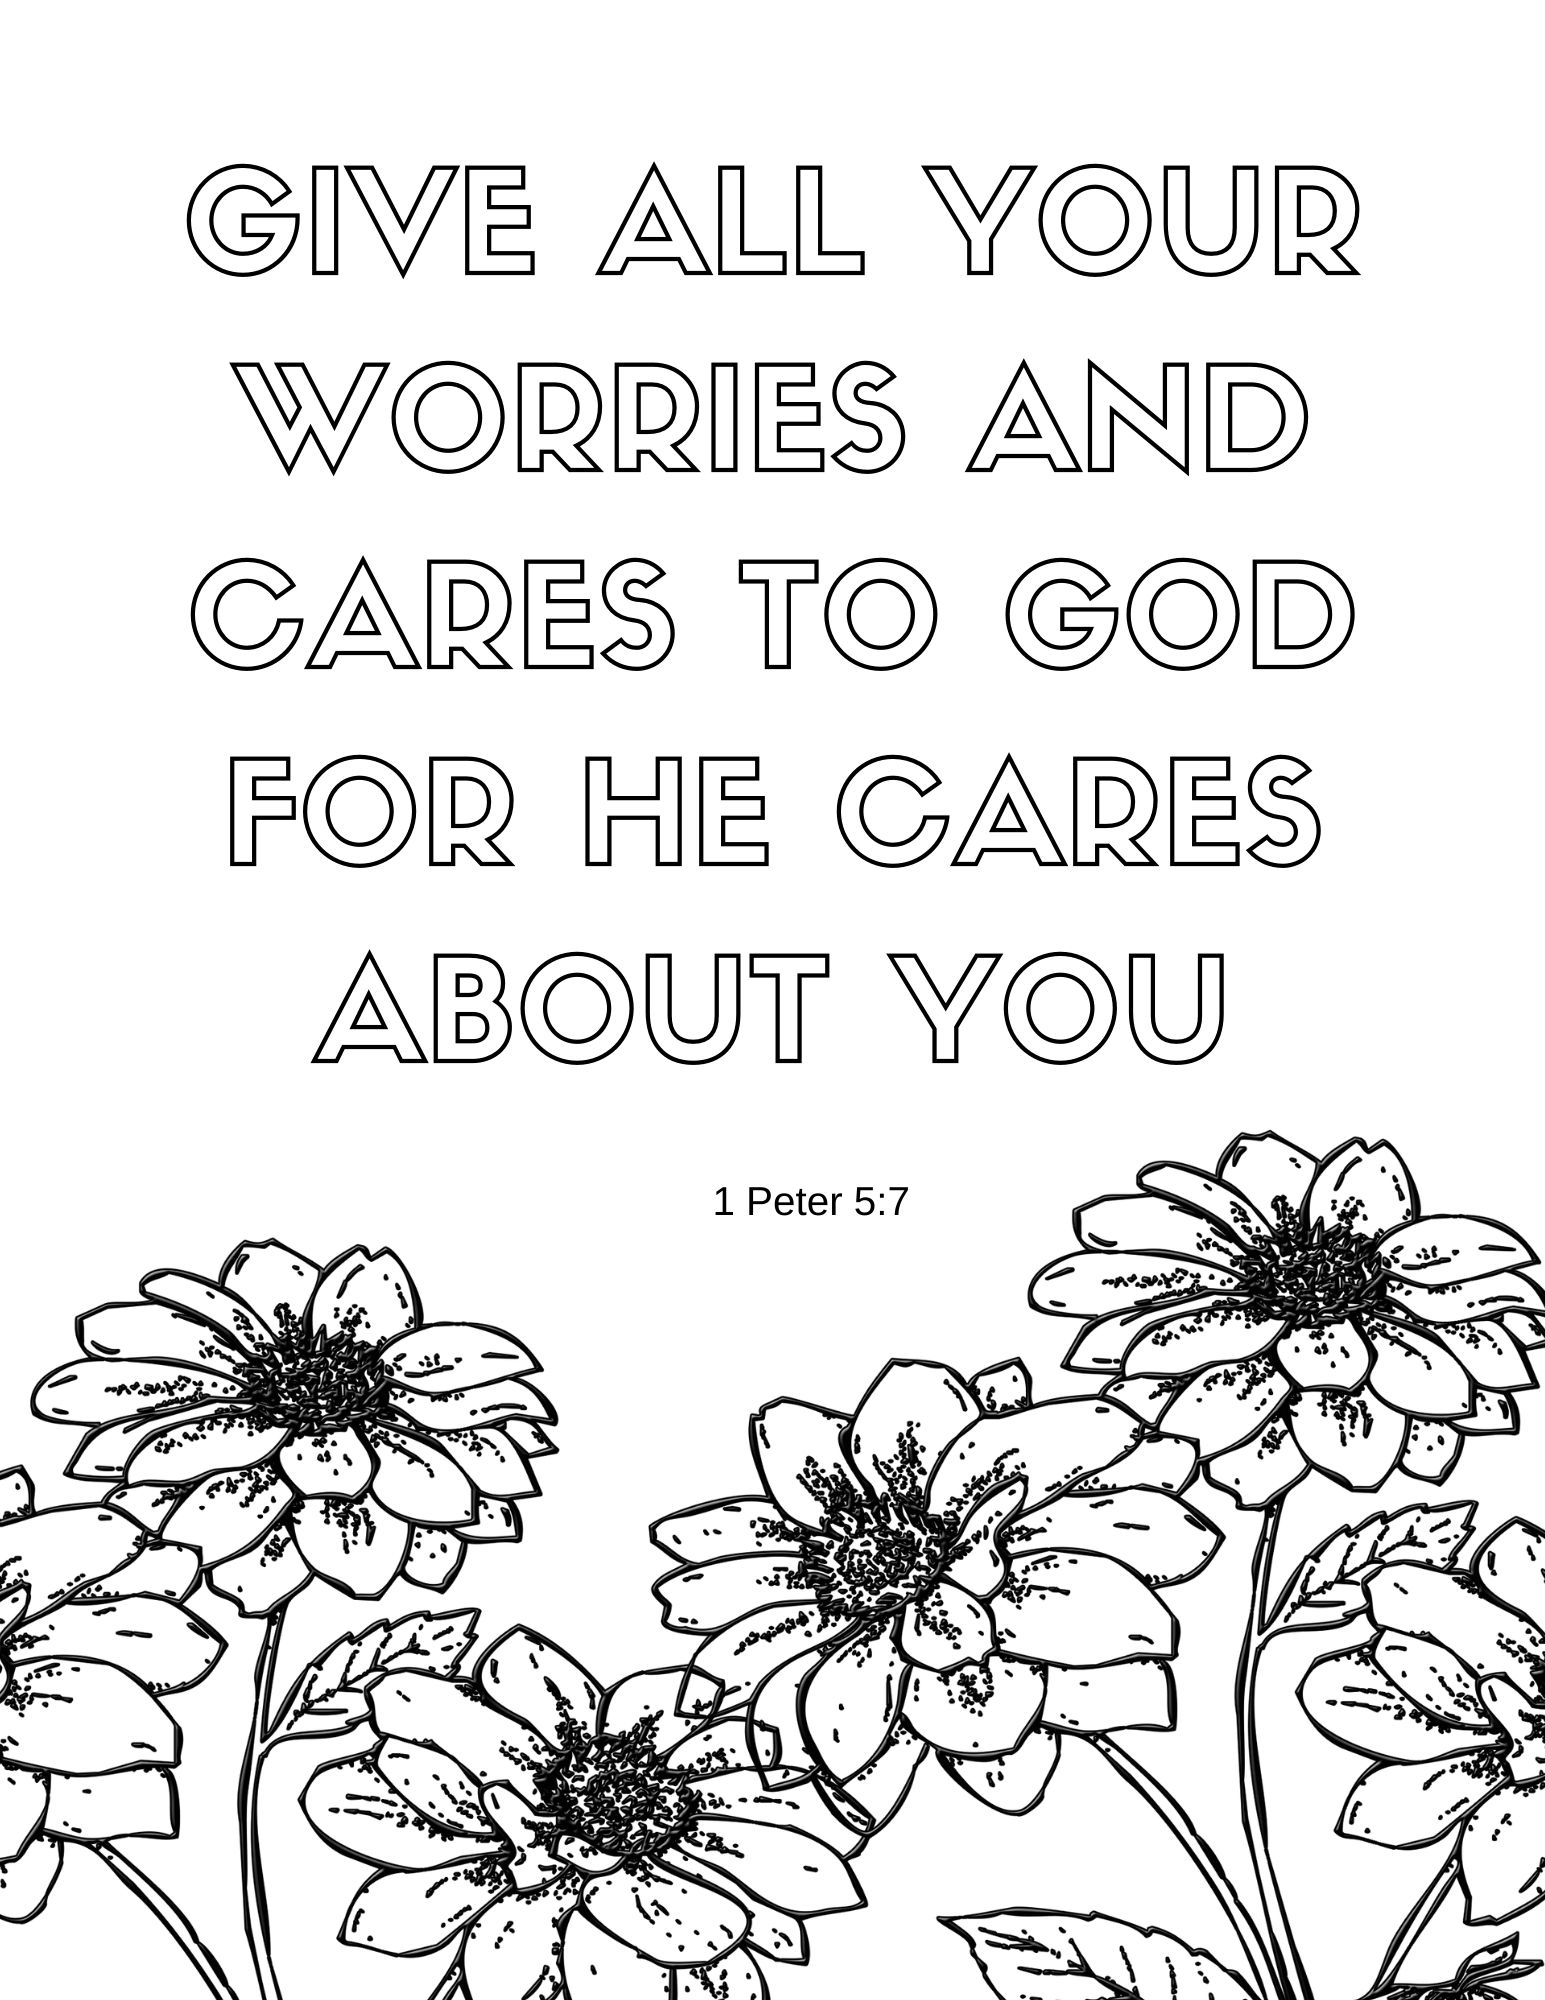 1 peter 5 7 coloring page printable 1 peter 5 7 coloring page hobbies creativity 5 1 peter page coloring 7